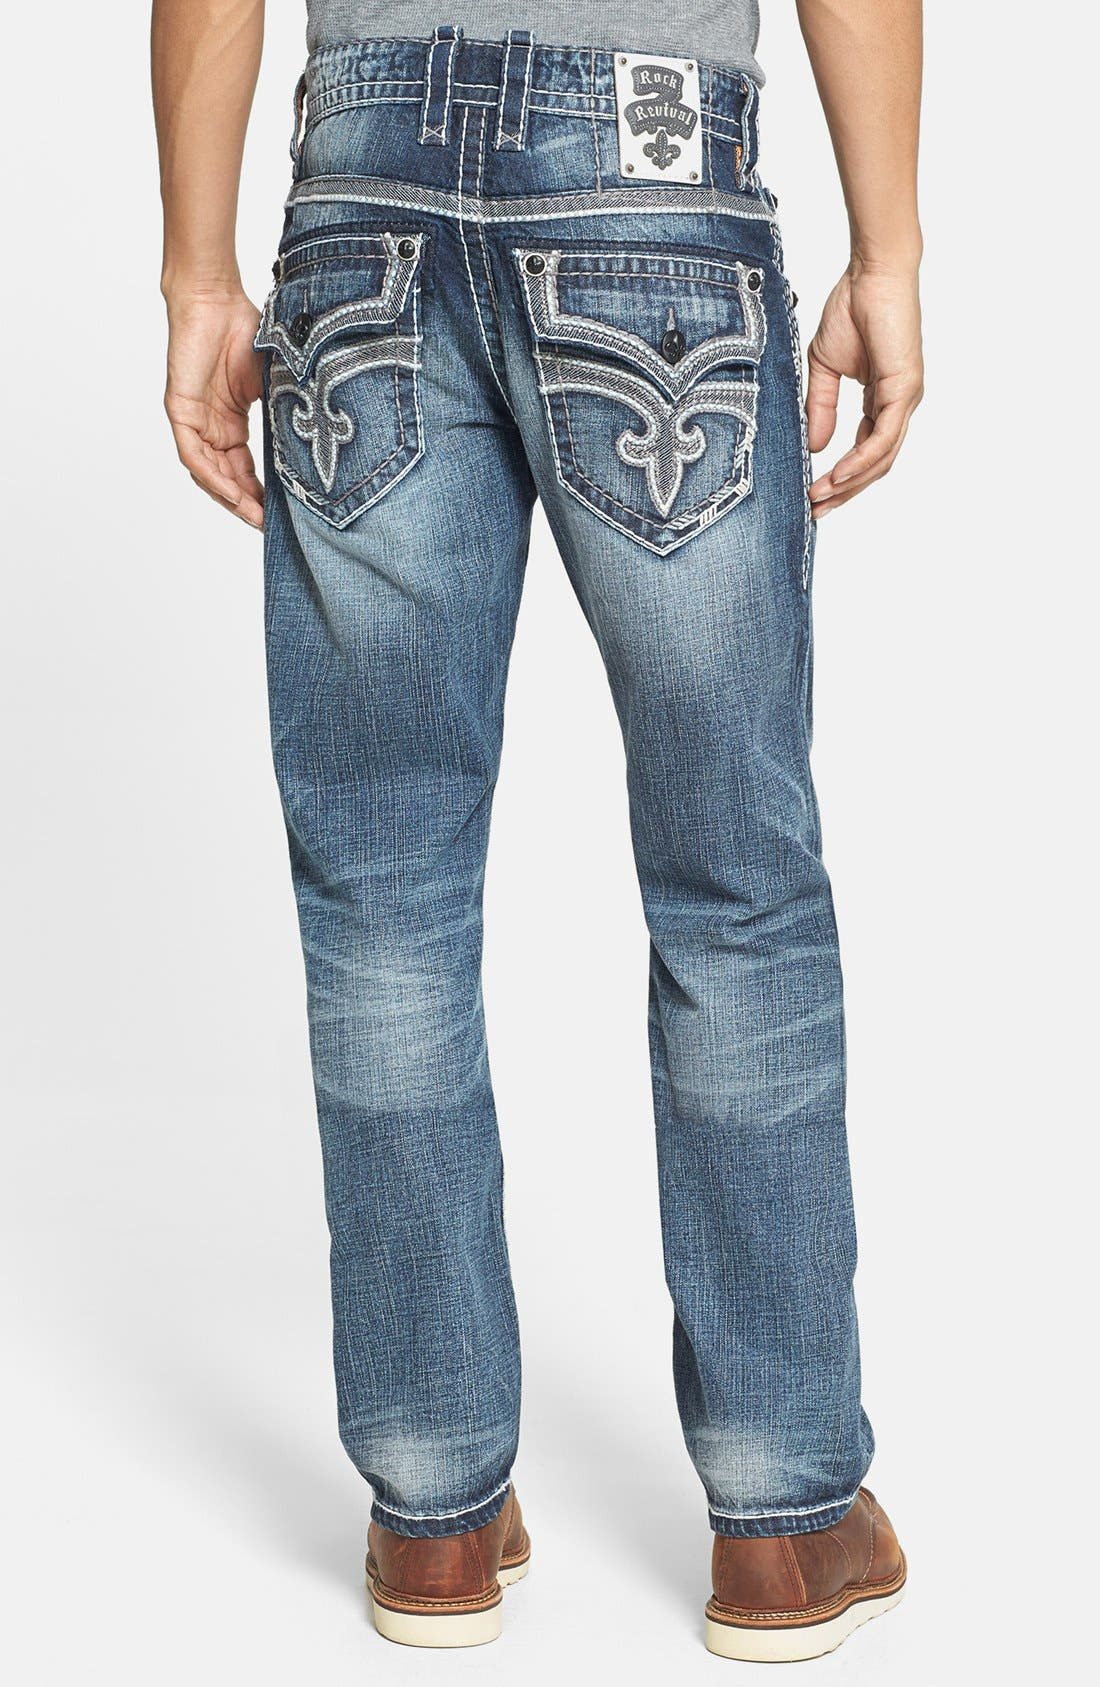 Alternate Image 1 Selected - Rock Revival 'Humfrey' Straight Leg Jeans (Medium Blue)